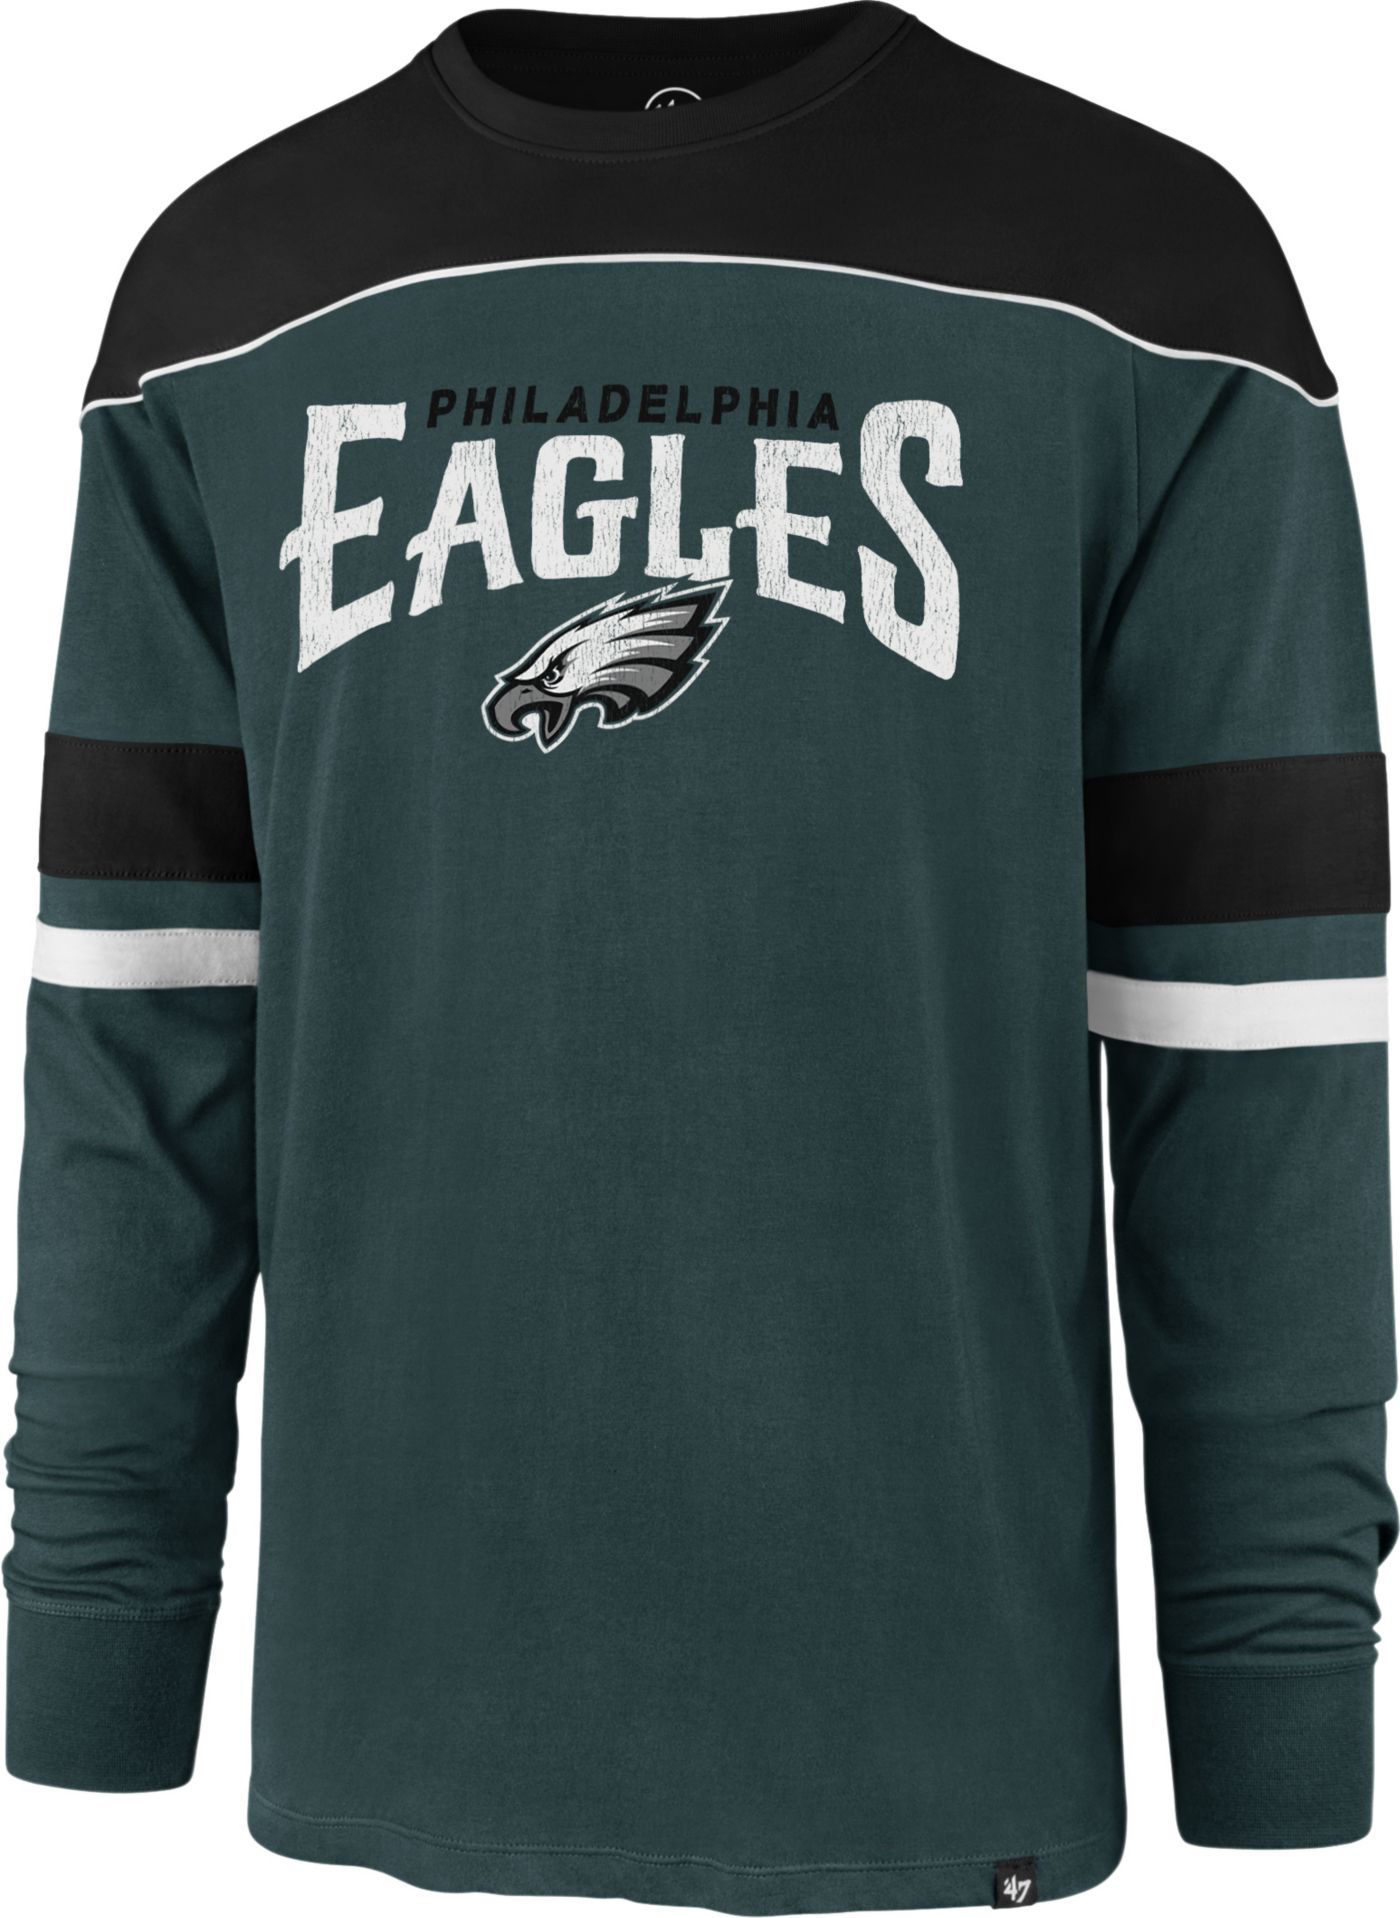 '47 Men's Philadelphia Eagles Win Streak Green Long Sleeve Shirt